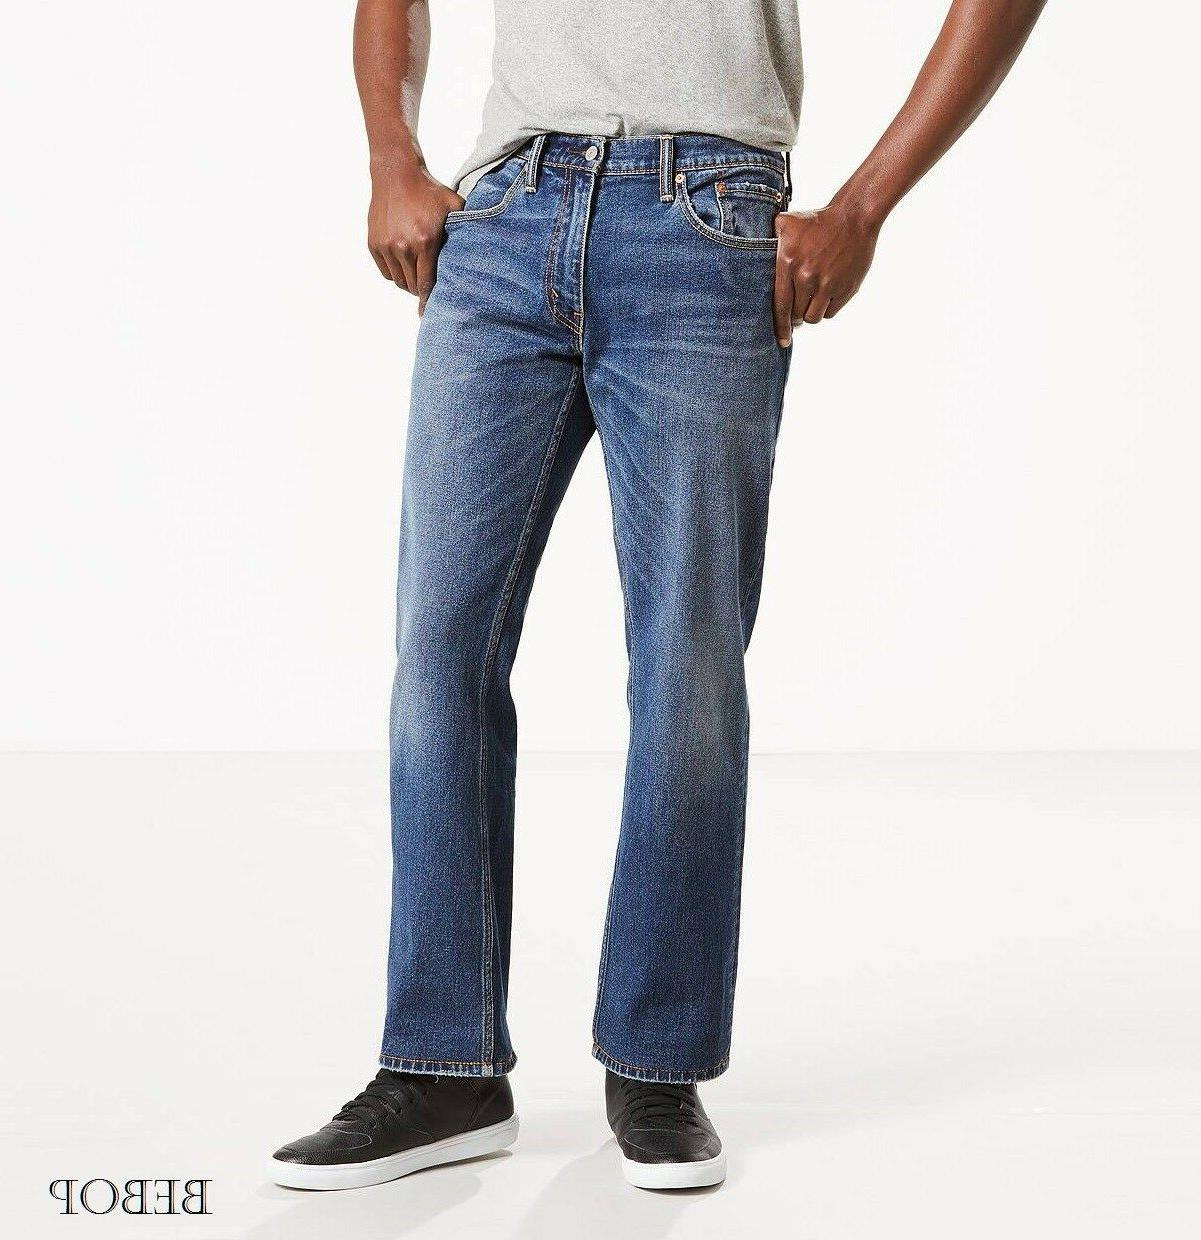 NWT Men's Levi's 559 Relaxed Straight Fit Jeans Stretch/No S